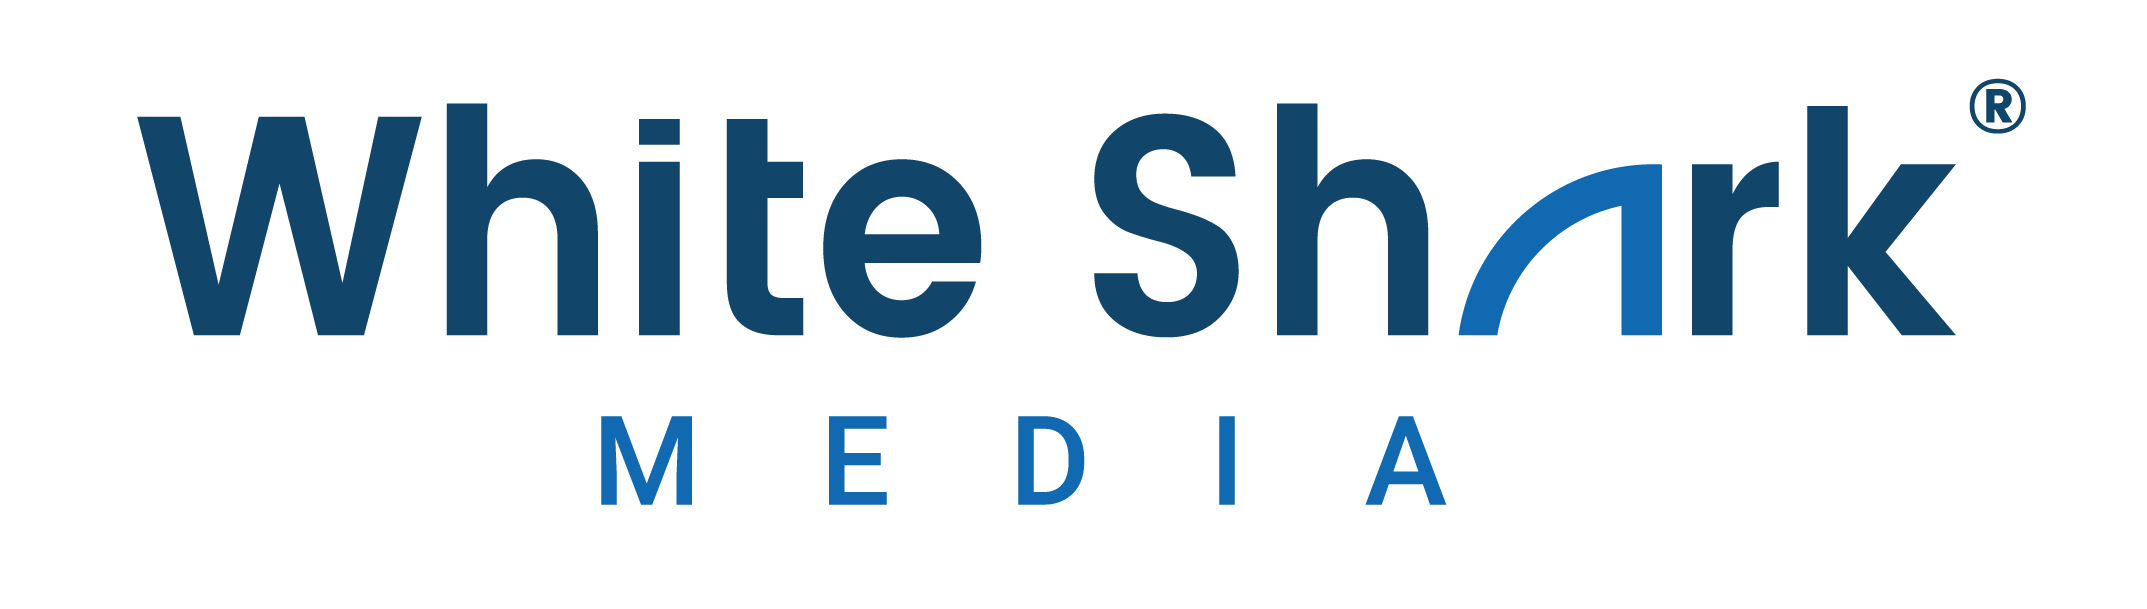 White Shark Media - Logo _ Light Backgrounds